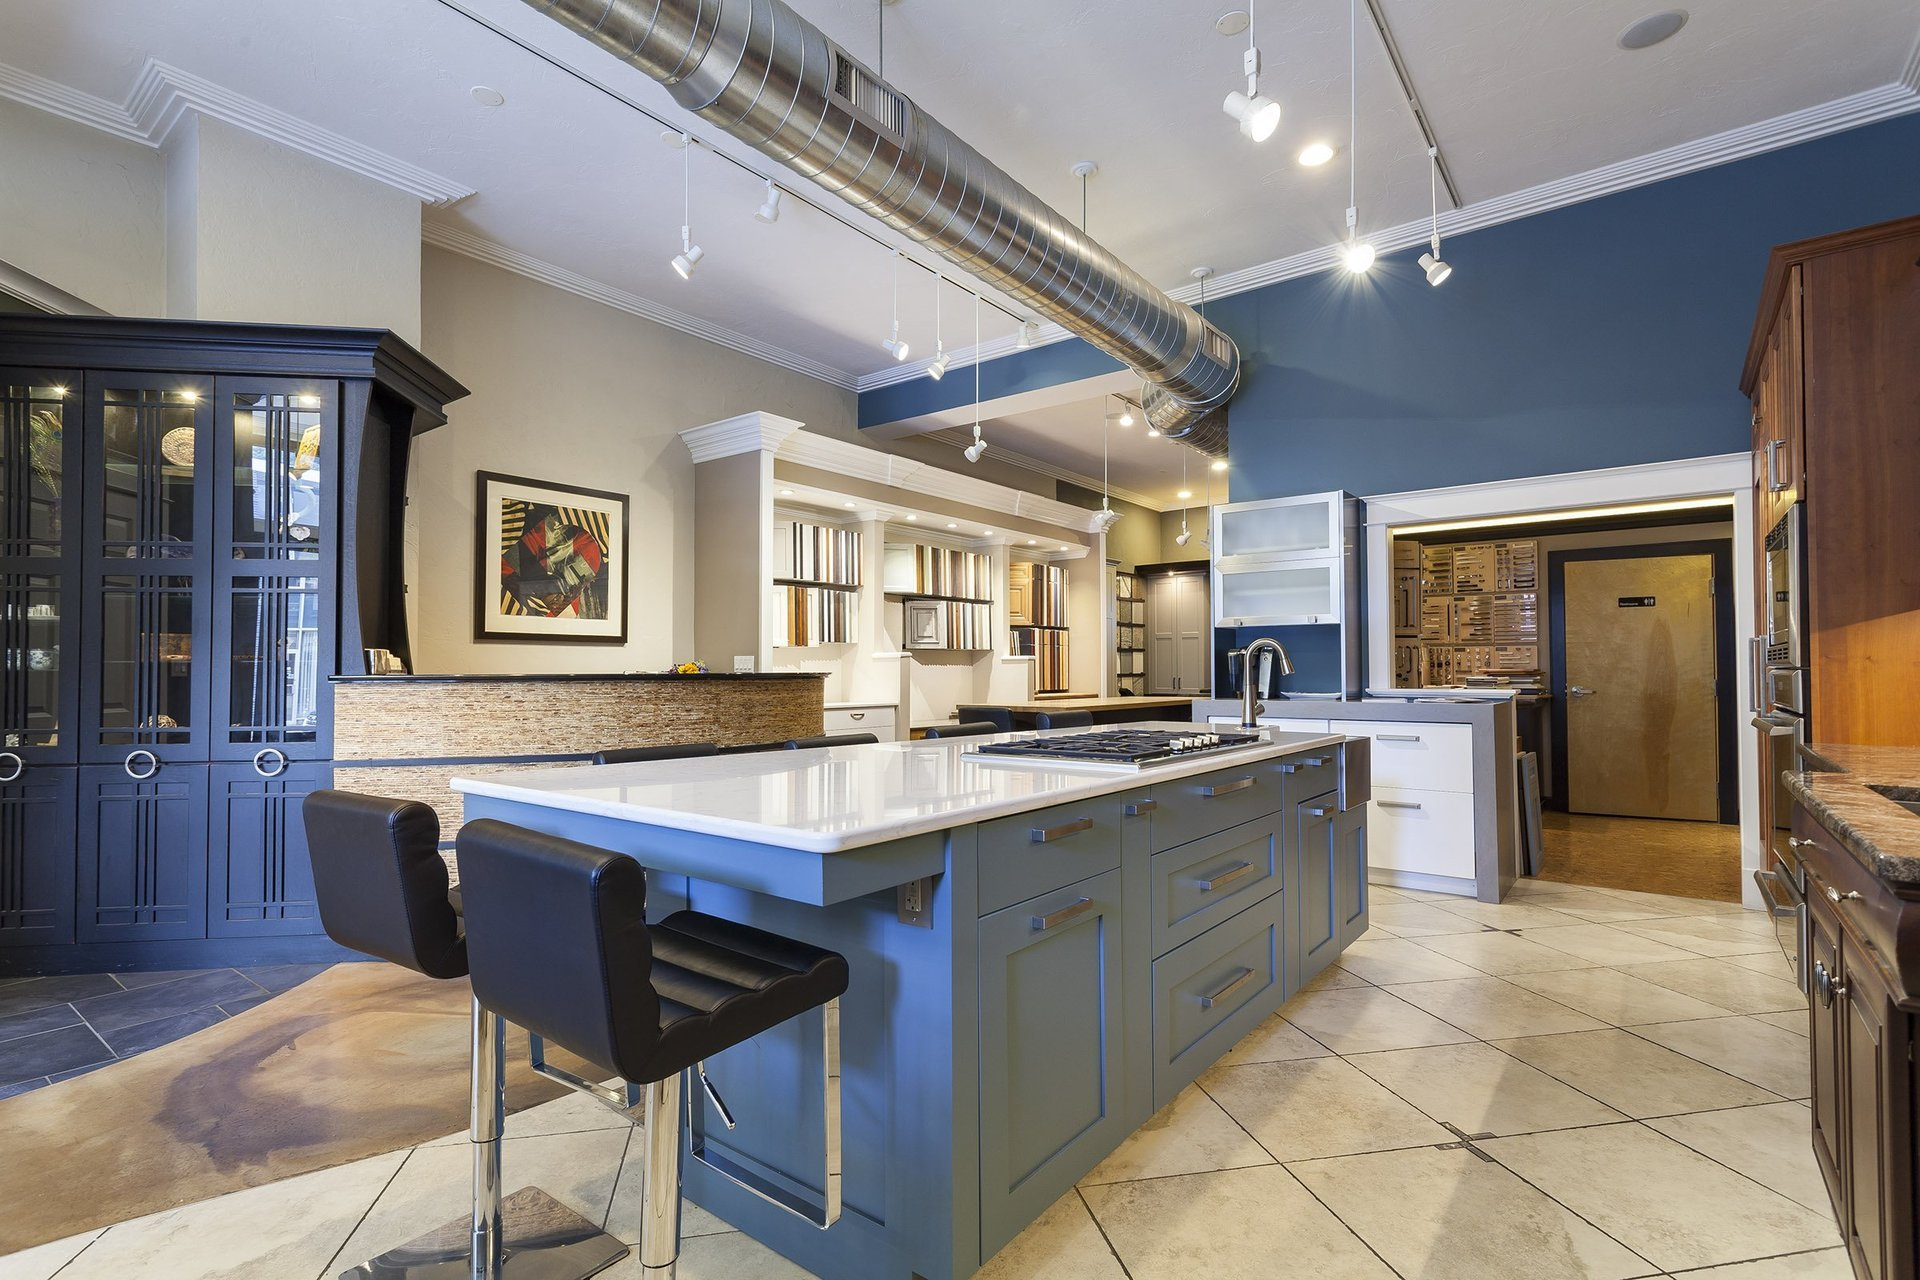 Jacob evans kitchen bath showroom pittsburgh pa for Kitchen remodeling pittsburgh pa